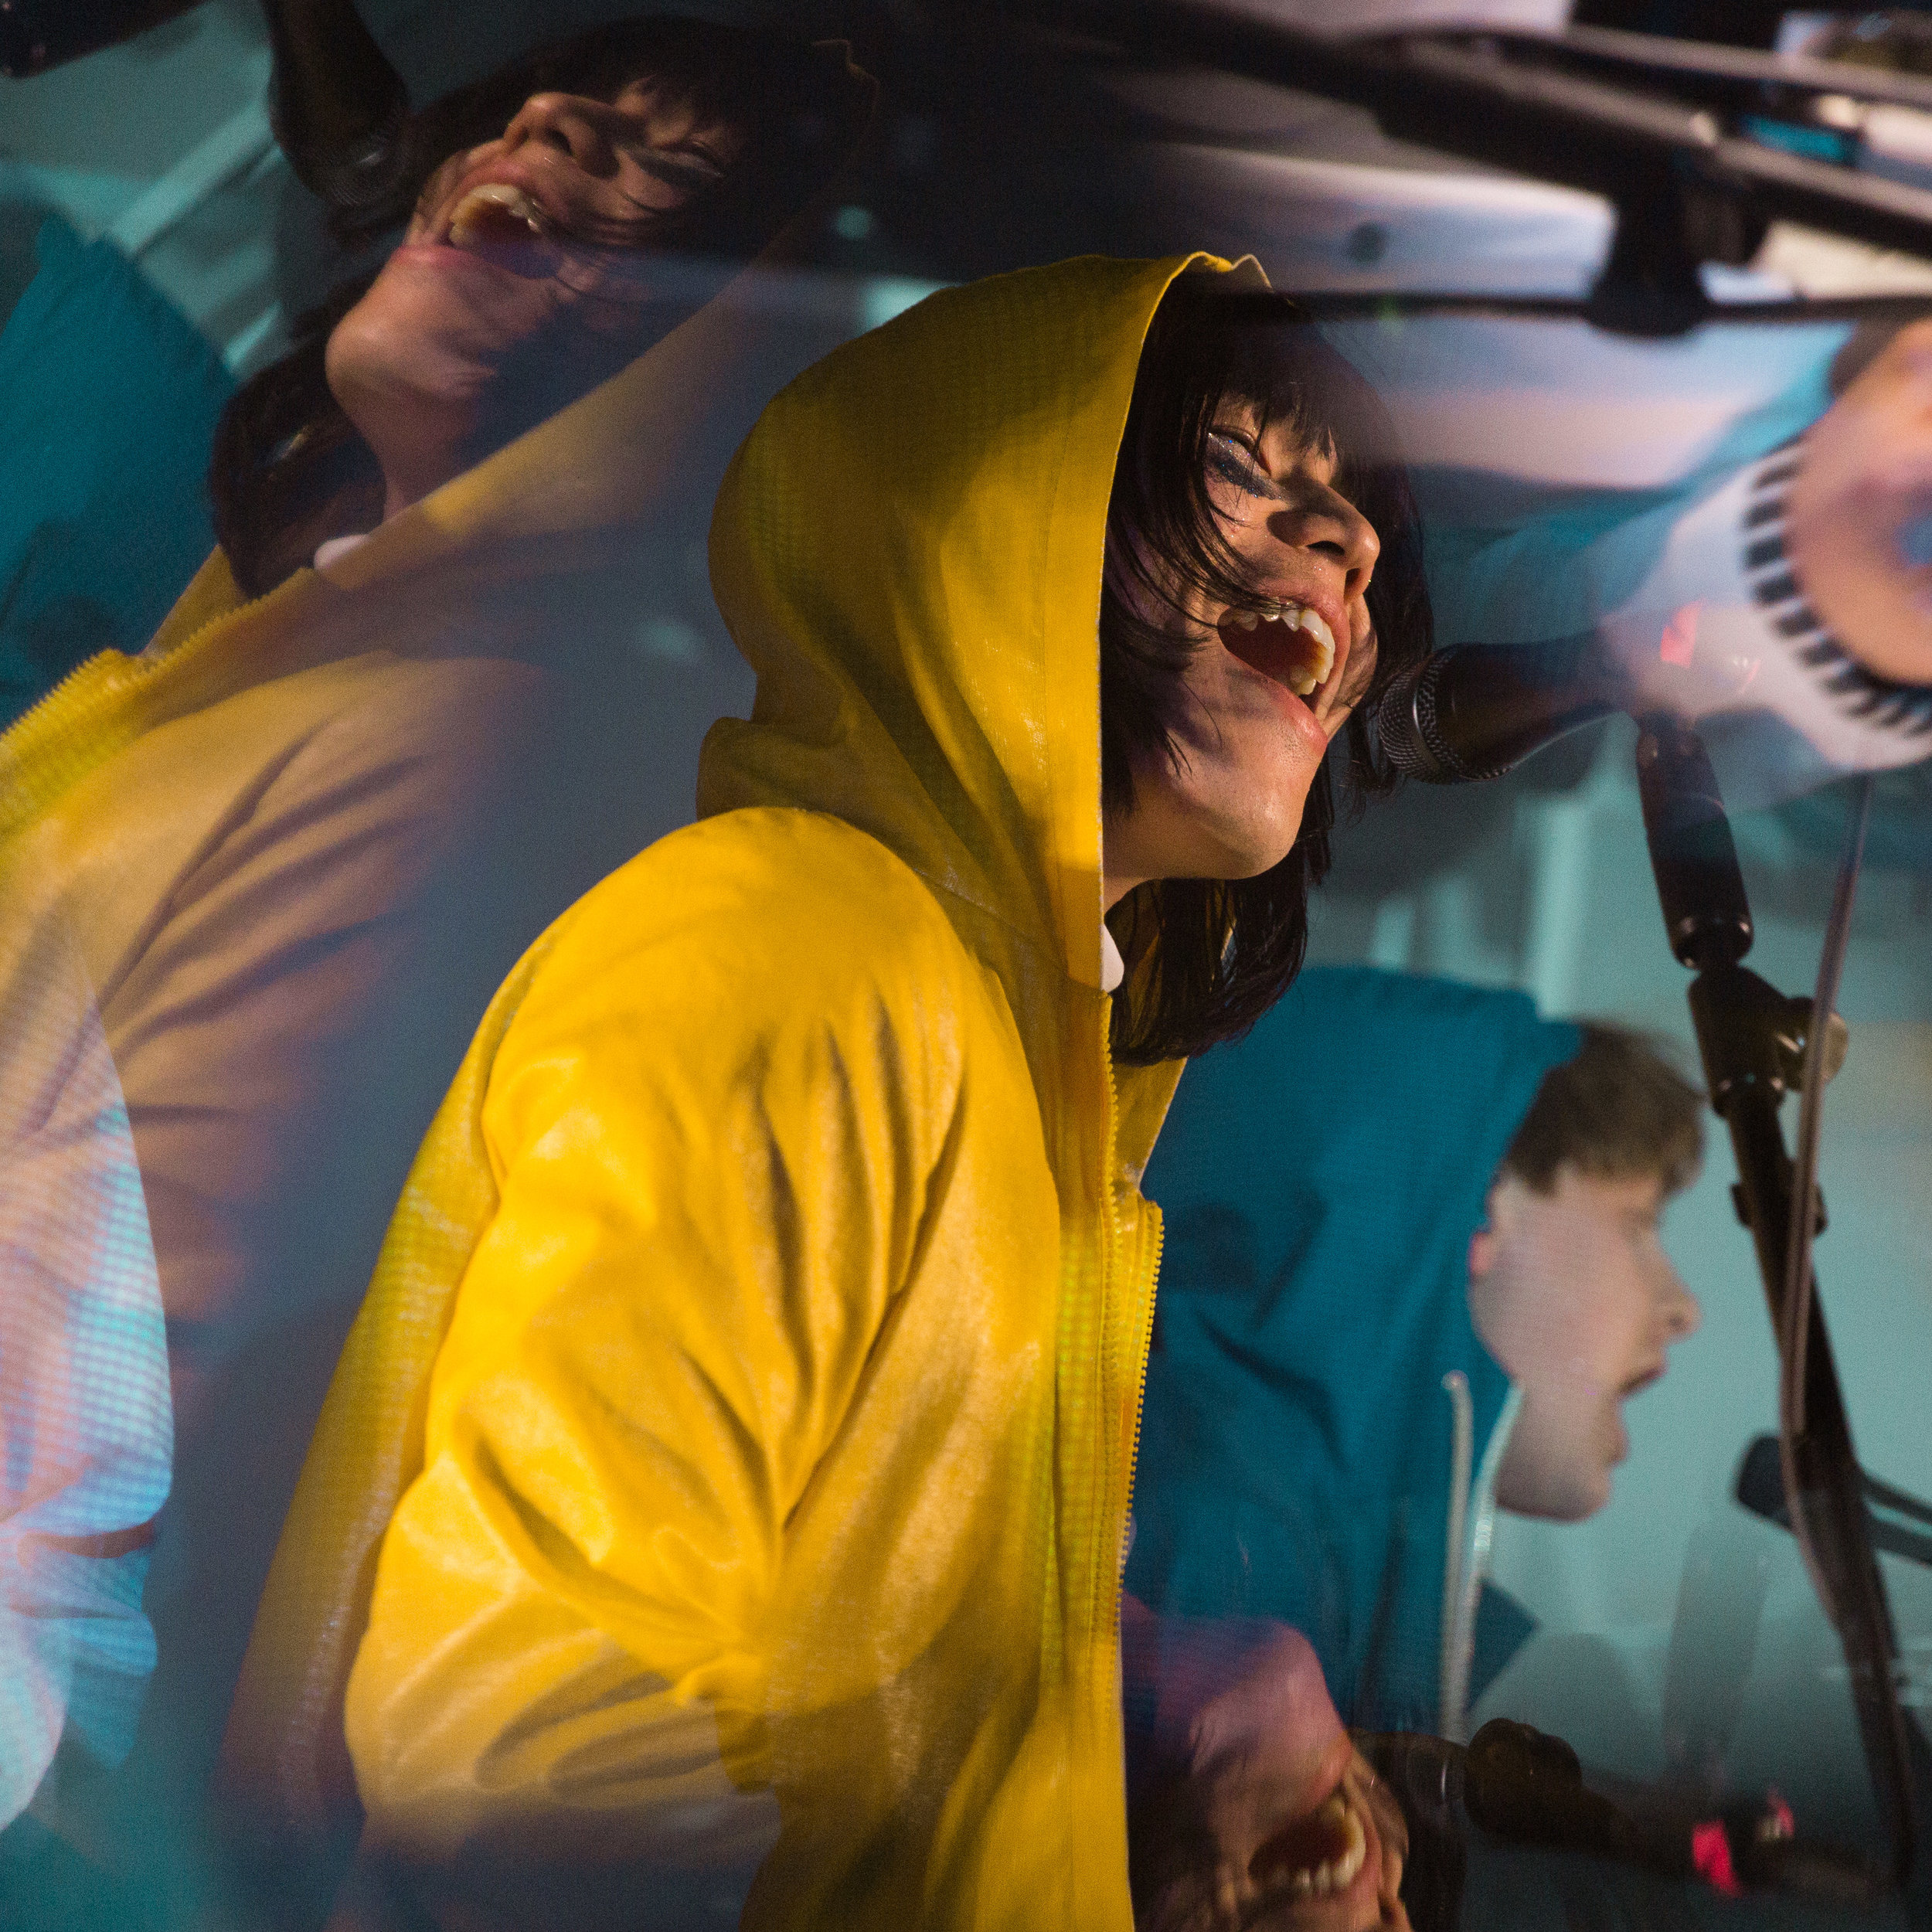 171217-kirby-gladstein-photography-Superorganism-concert-Moroccan-Lounge-Los-Angeles-8118-2.jpg